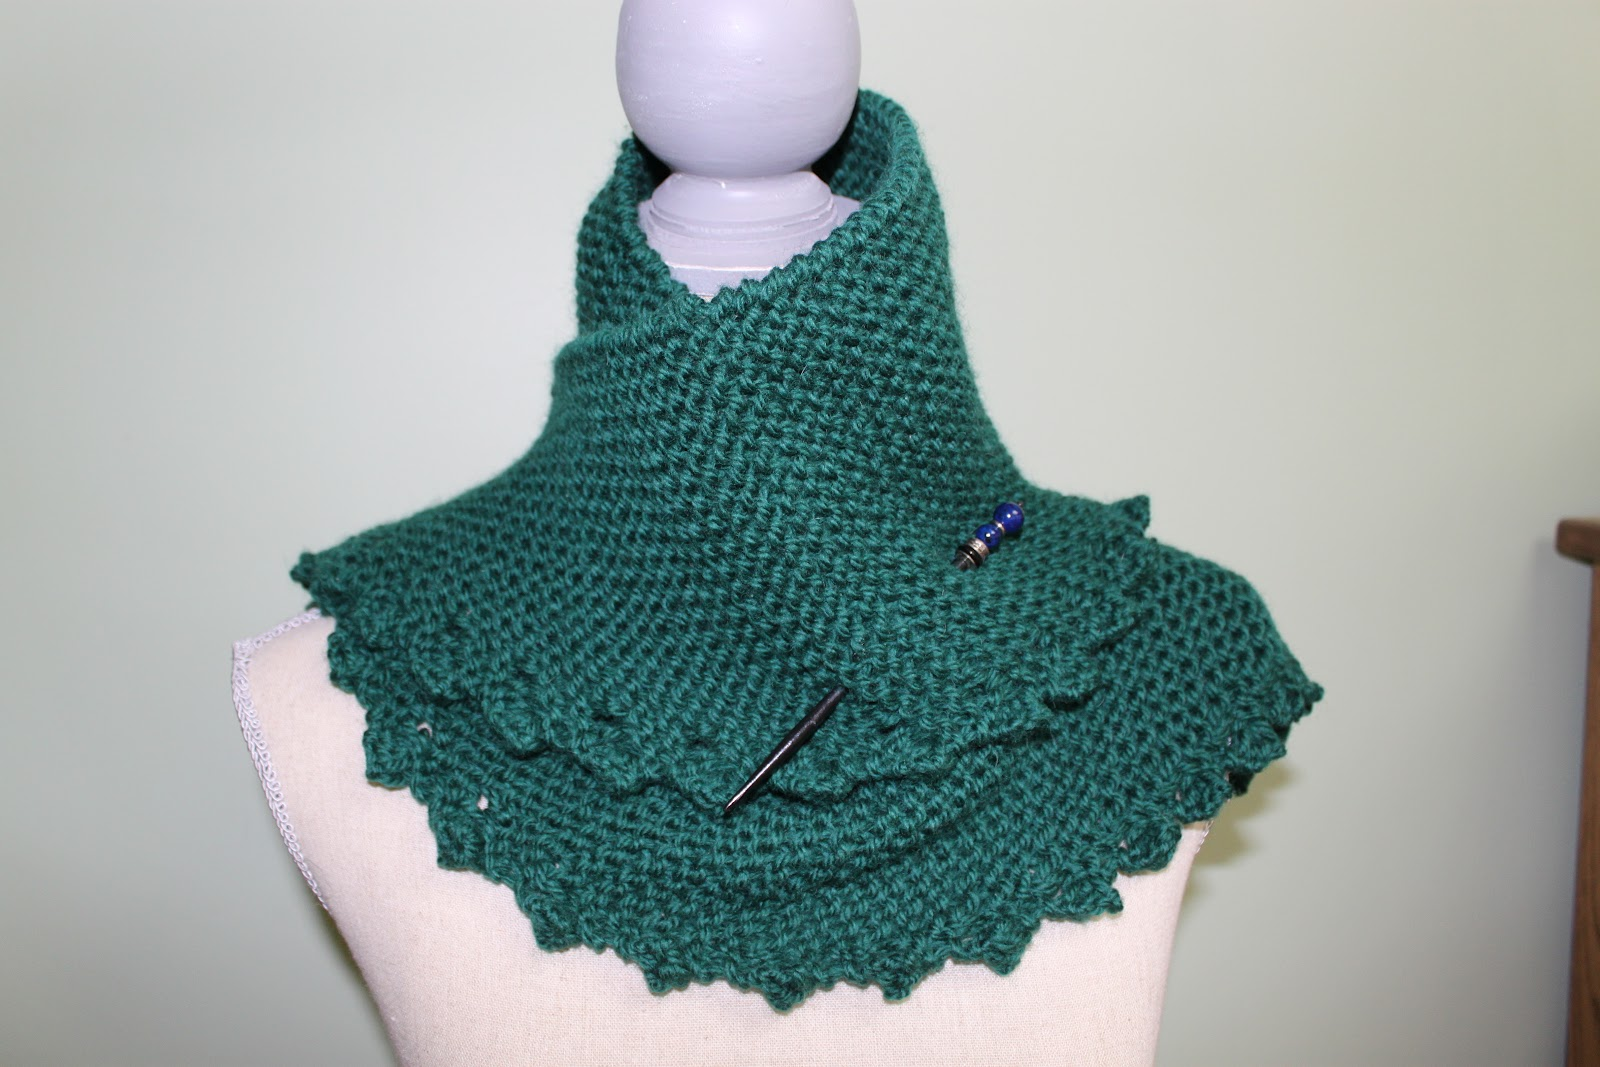 Knitting Pattern Jumper With Heart : Celtic Heart Knitting and Quilting: Jumper Cables Knitting ...